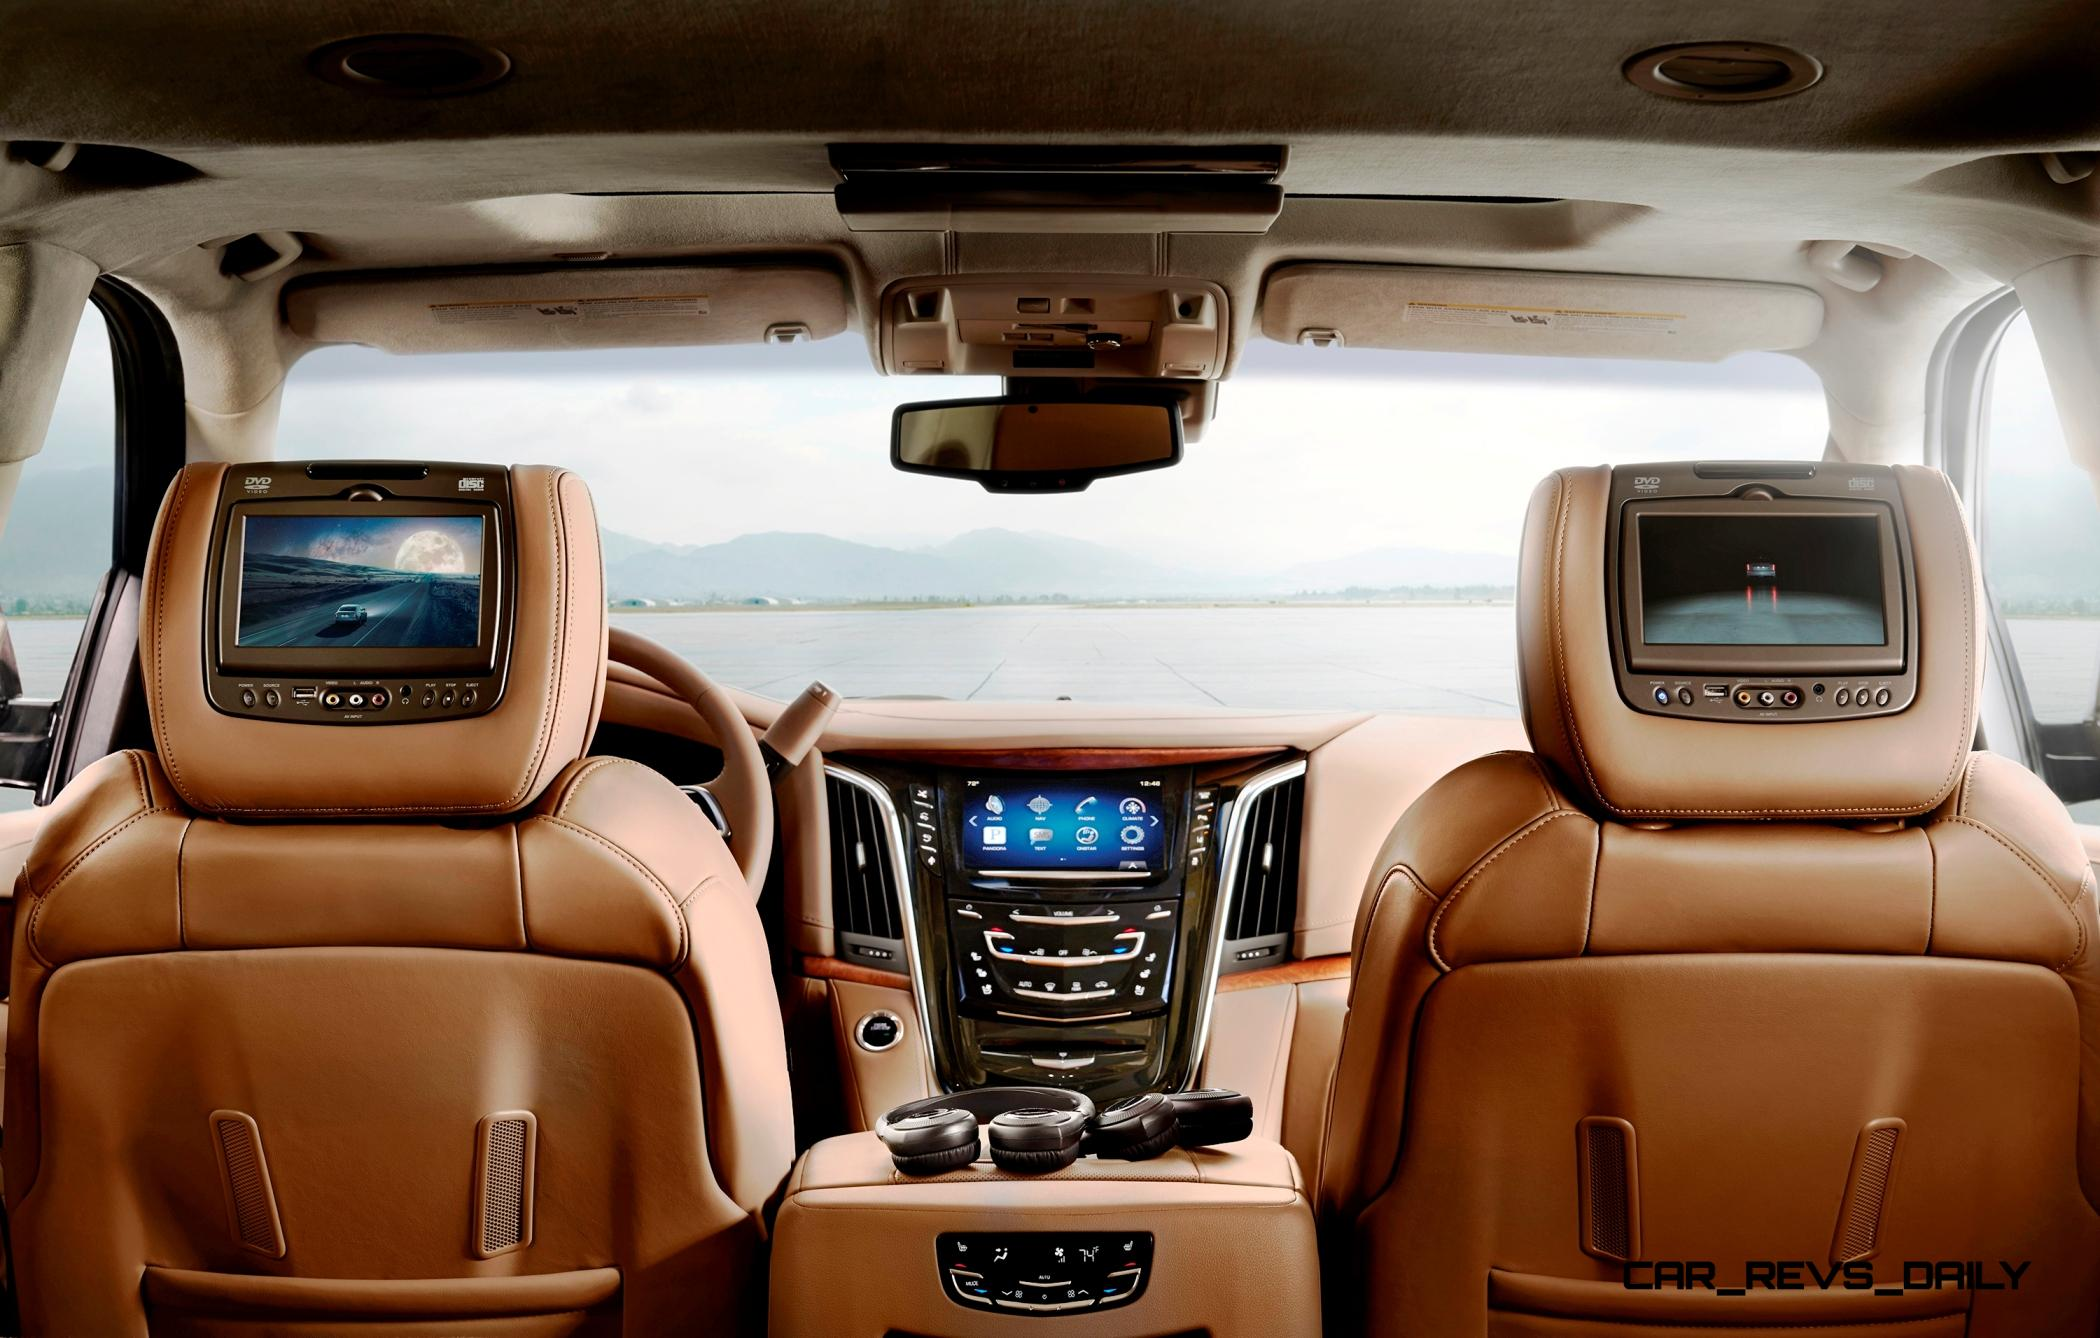 2015 Cadillac Escalade Platinum Brings New Crest Emblem 8 Sp Auto And Posher Cabin From 90k